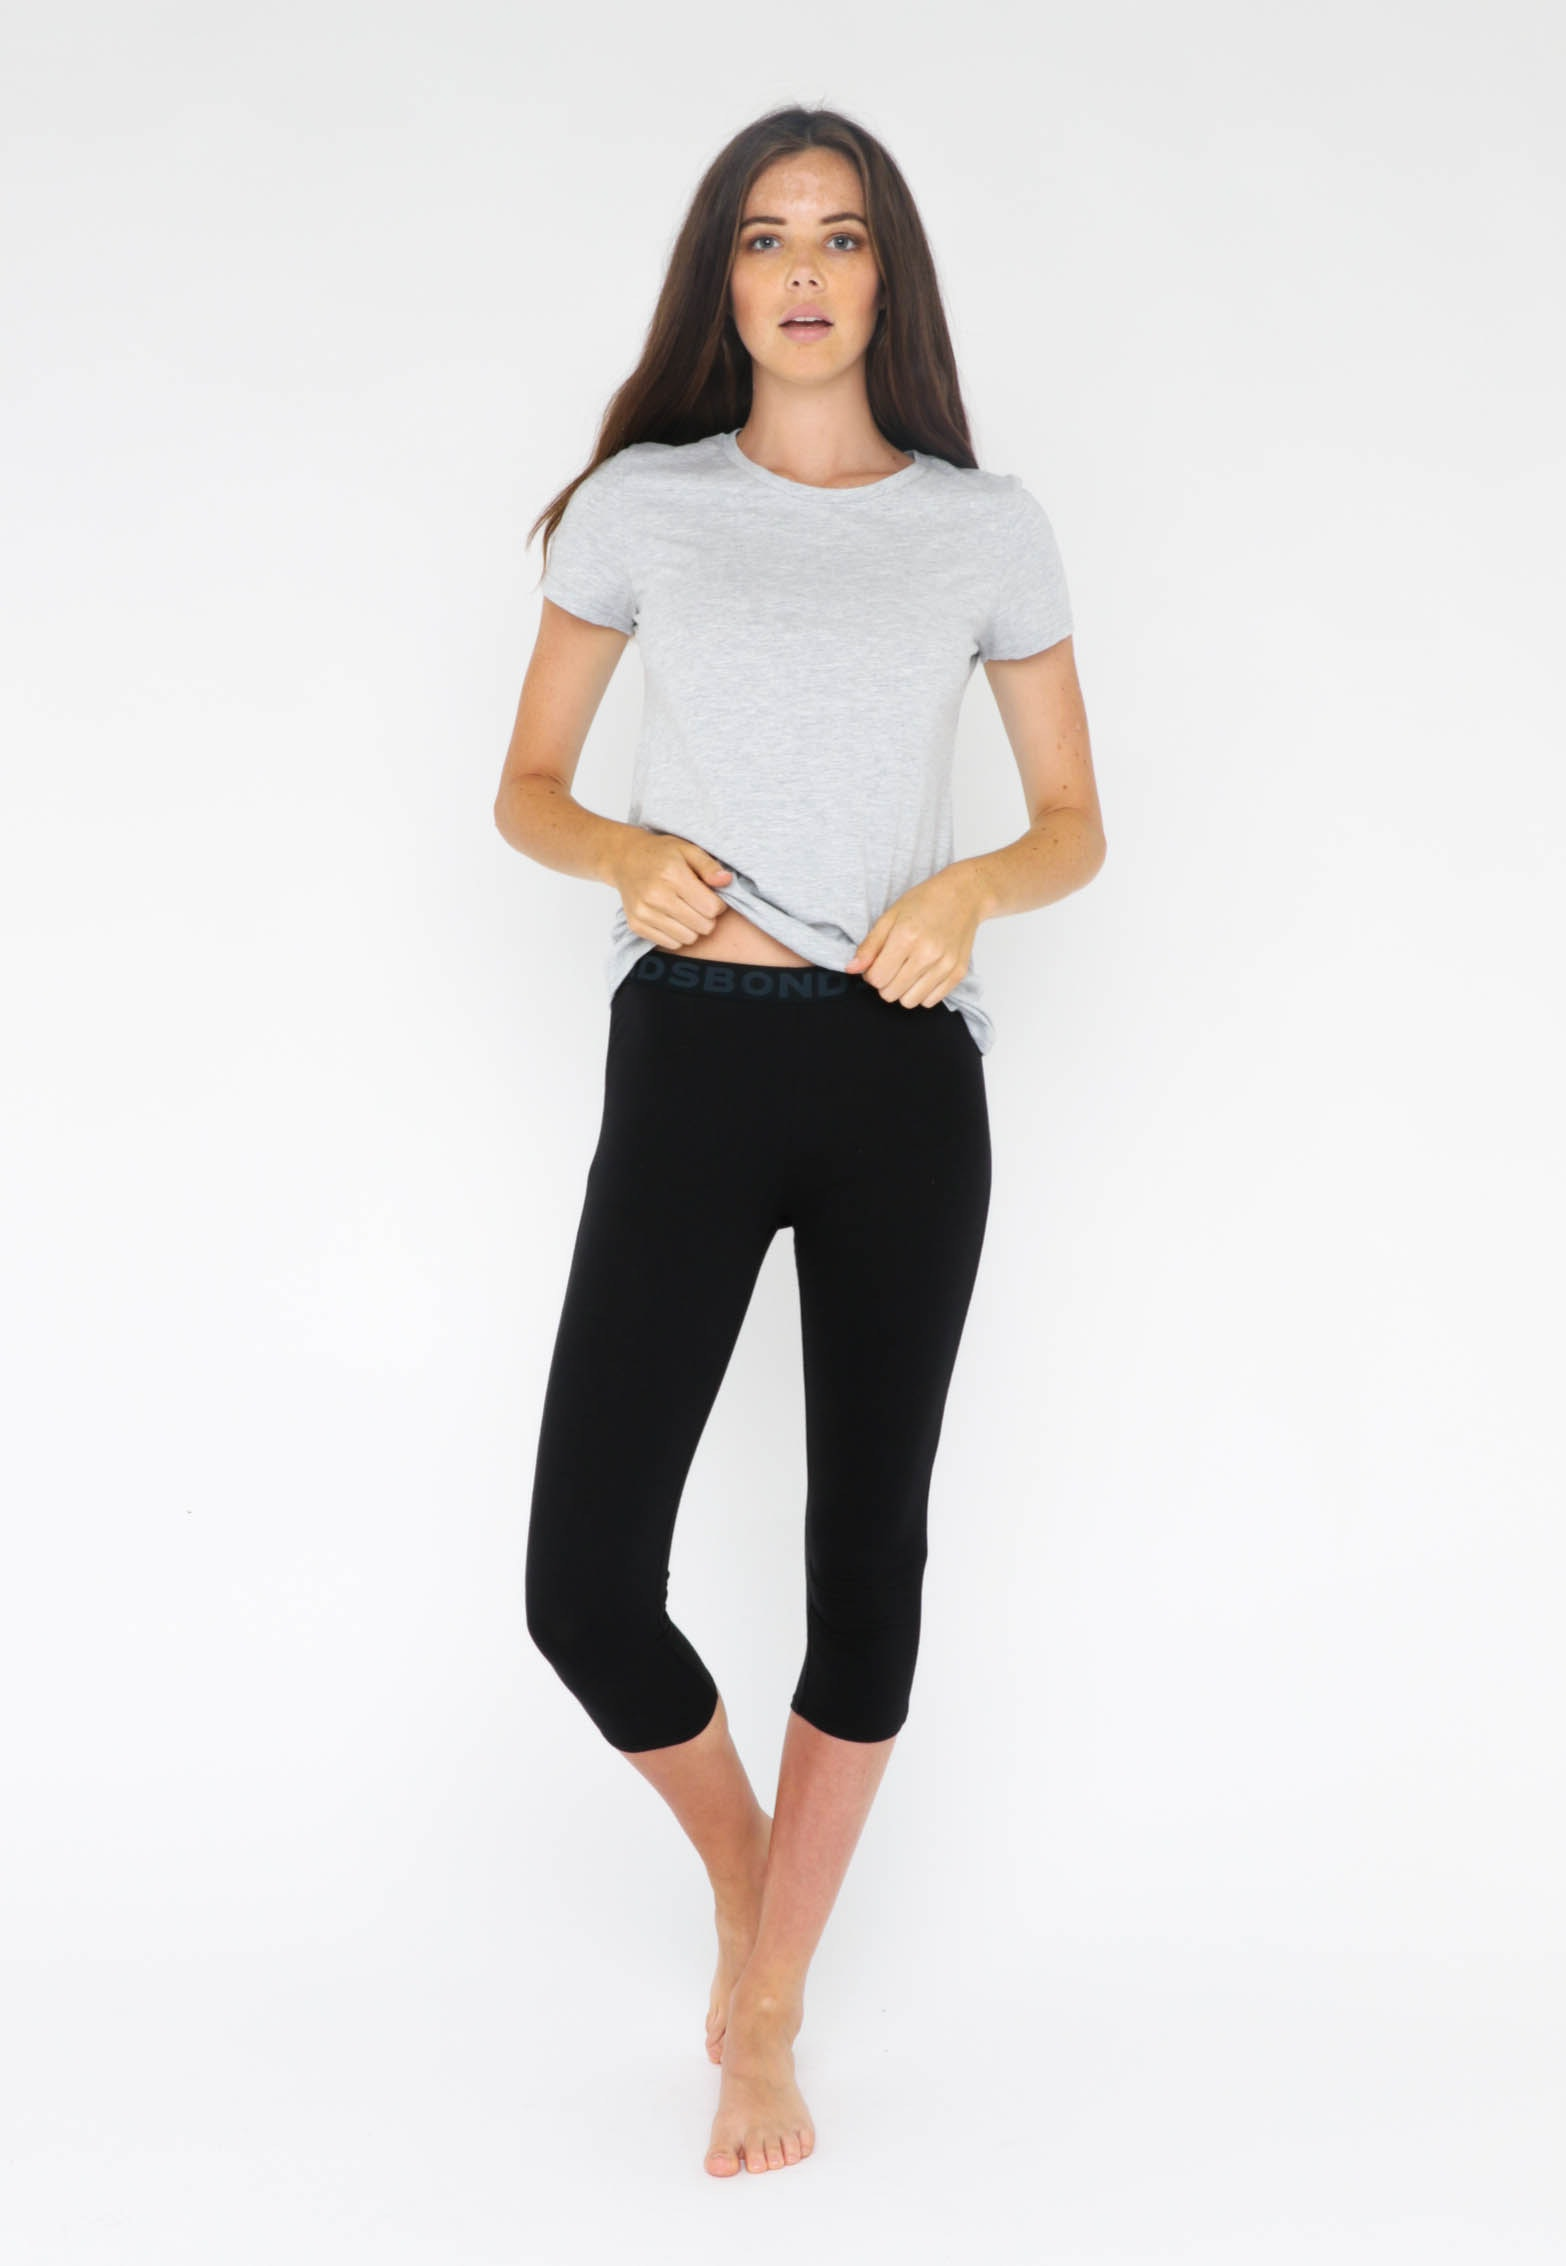 BONDS - Core 3/4 Legging - Black